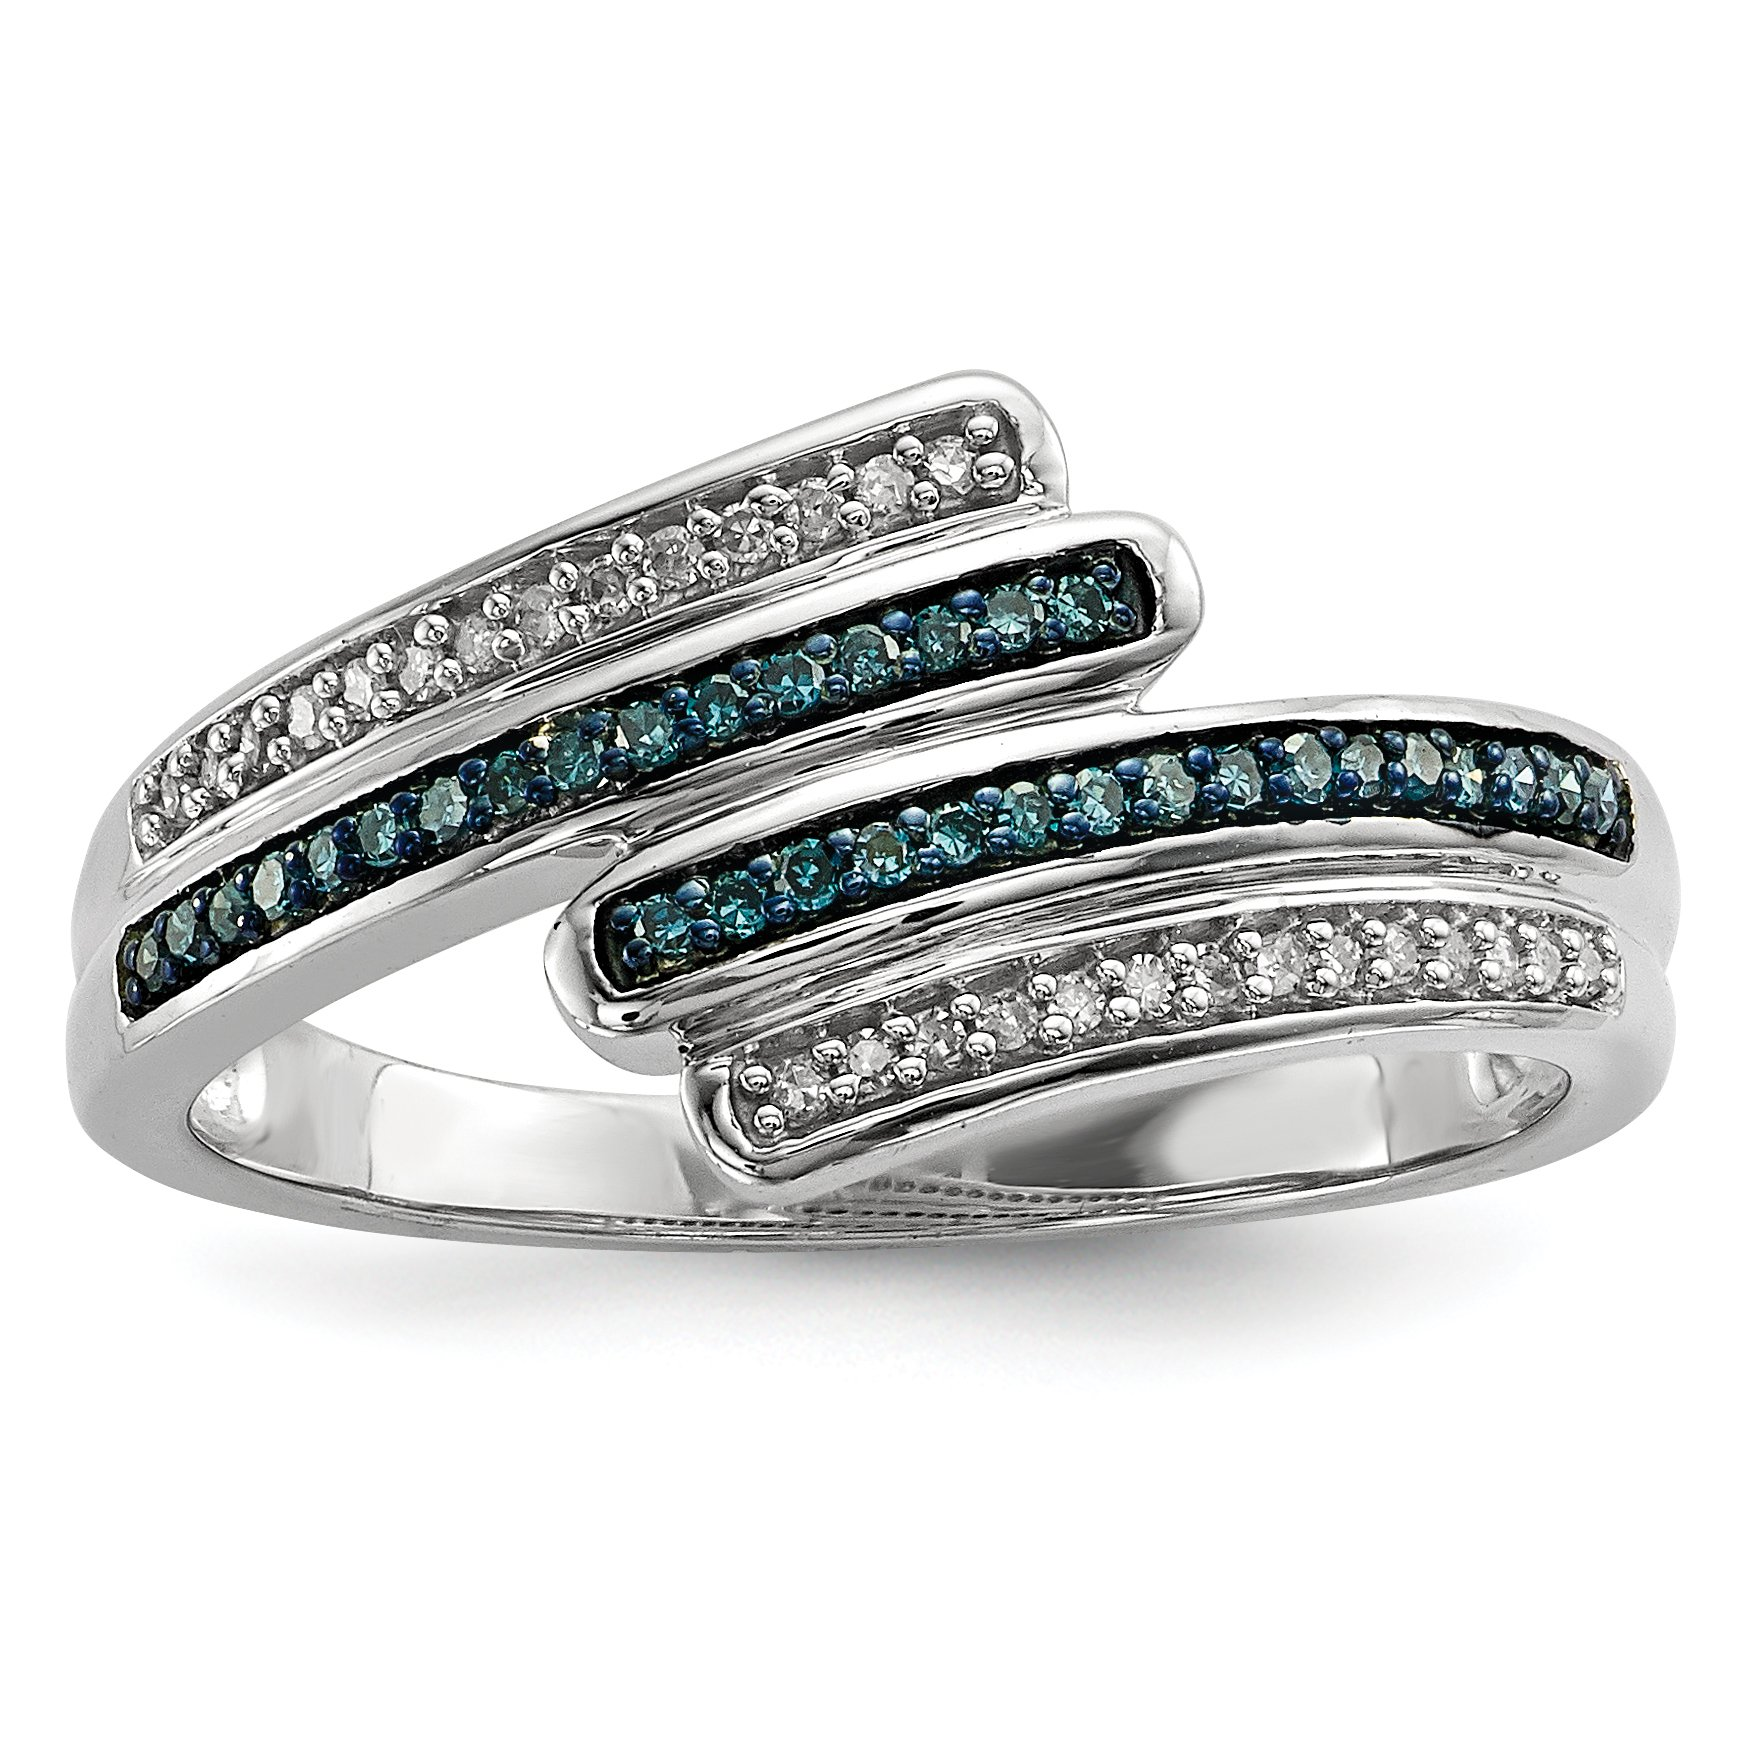 ICE CARATS 925 Sterling Silver Blue White Diamond Band Ring Size 8.00 Fine Jewelry Gift Set For Women Heart